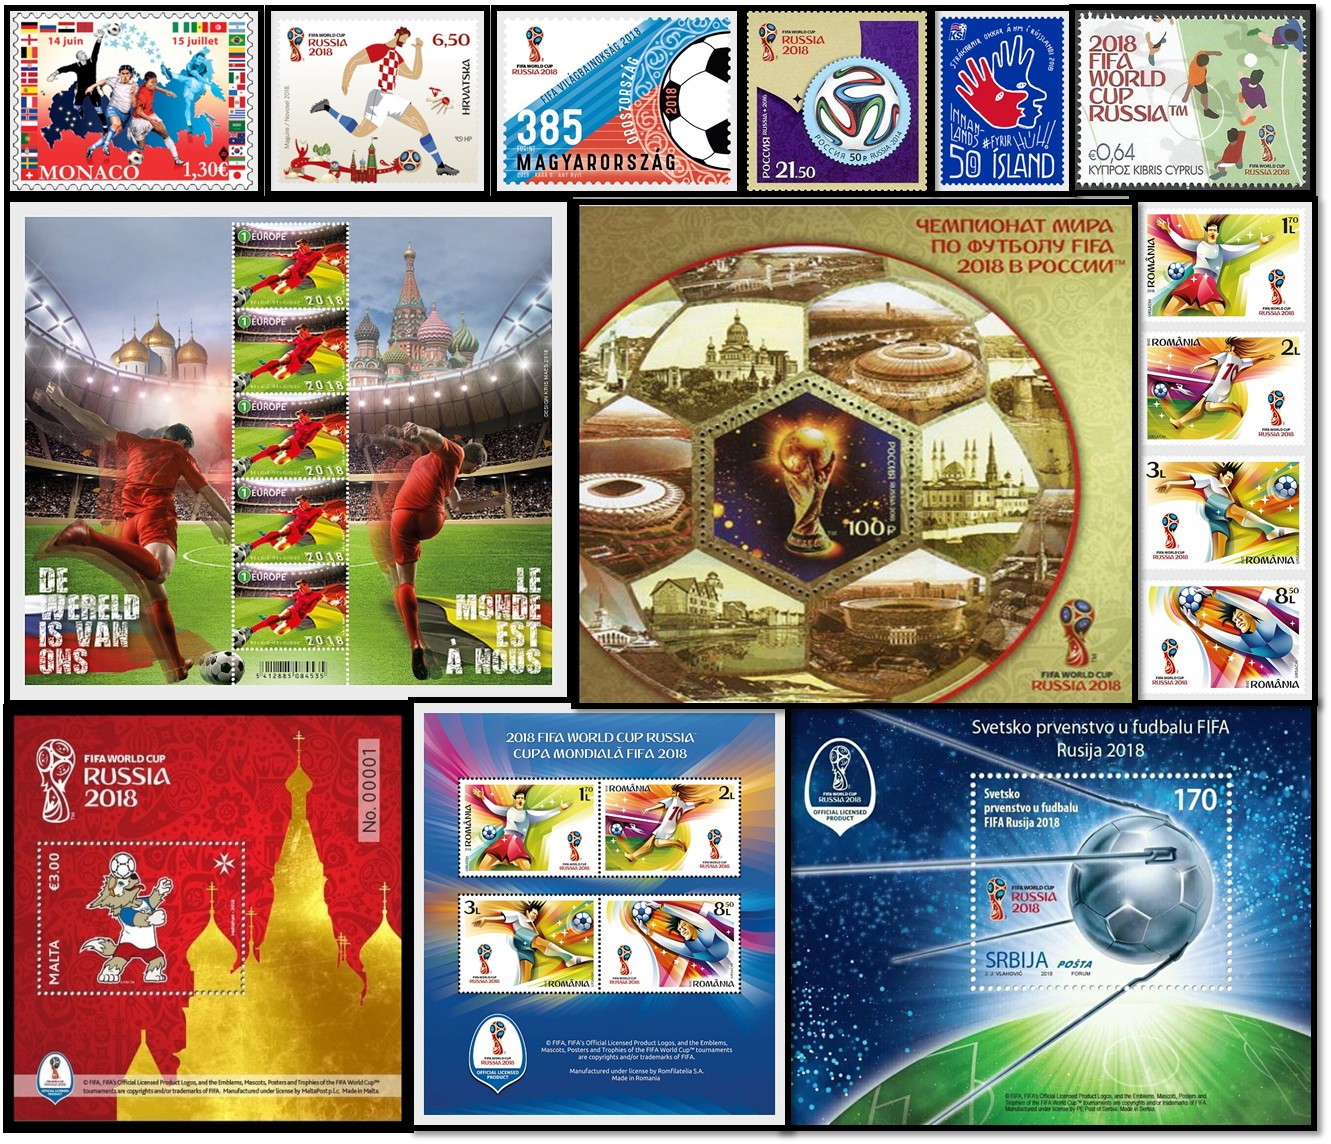 Postage stamps for the World Cup 2018 63